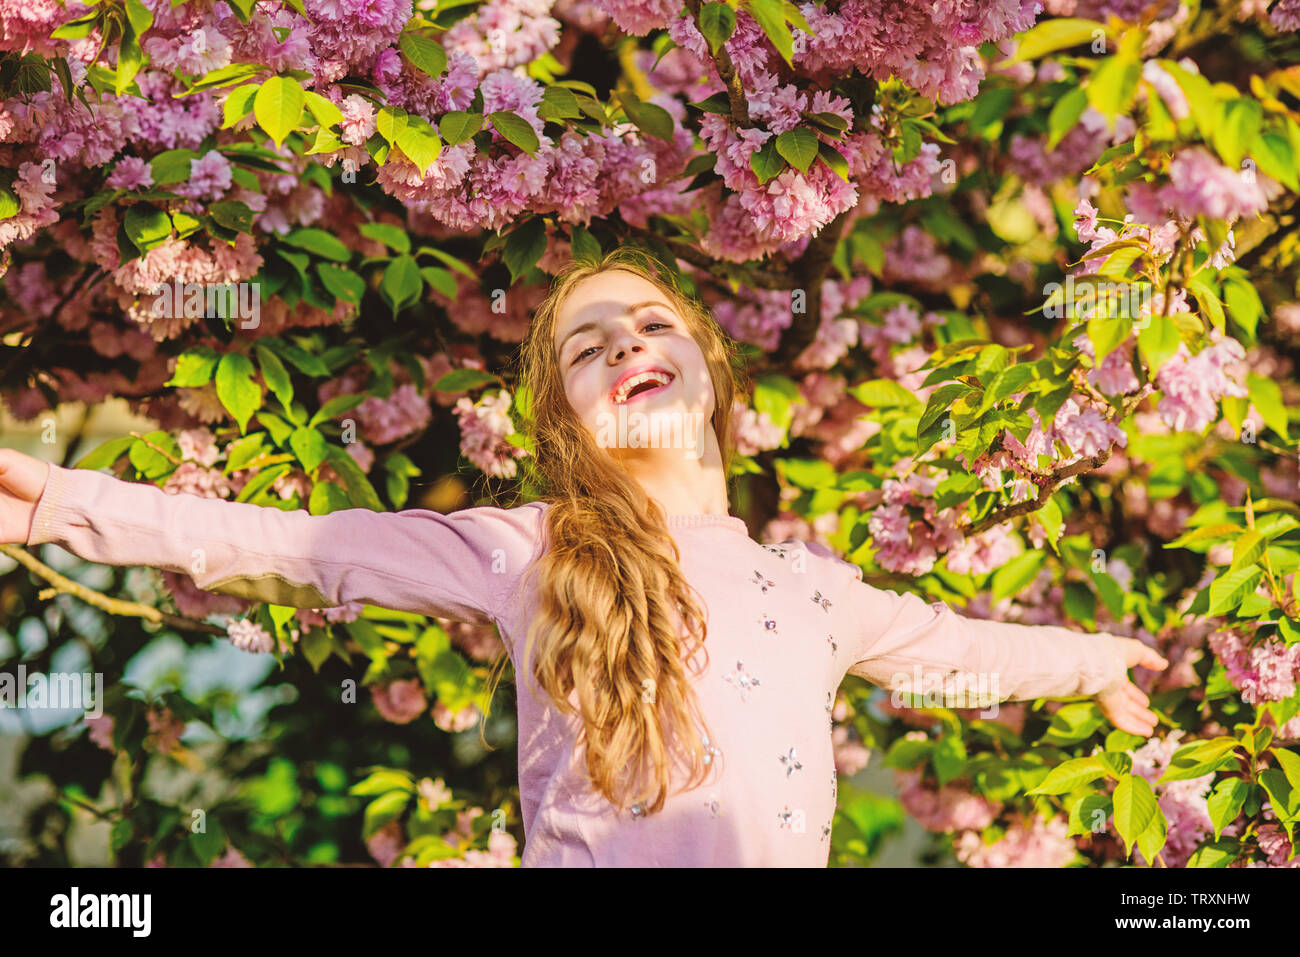 Capturing a happy moment. Natural cosmetics for skin. happy girl in cherry flower. Sakura tree blooming. small girl child in spring flower bloom. summer. Childhood beauty. blossom smell, allergy. - Stock Image